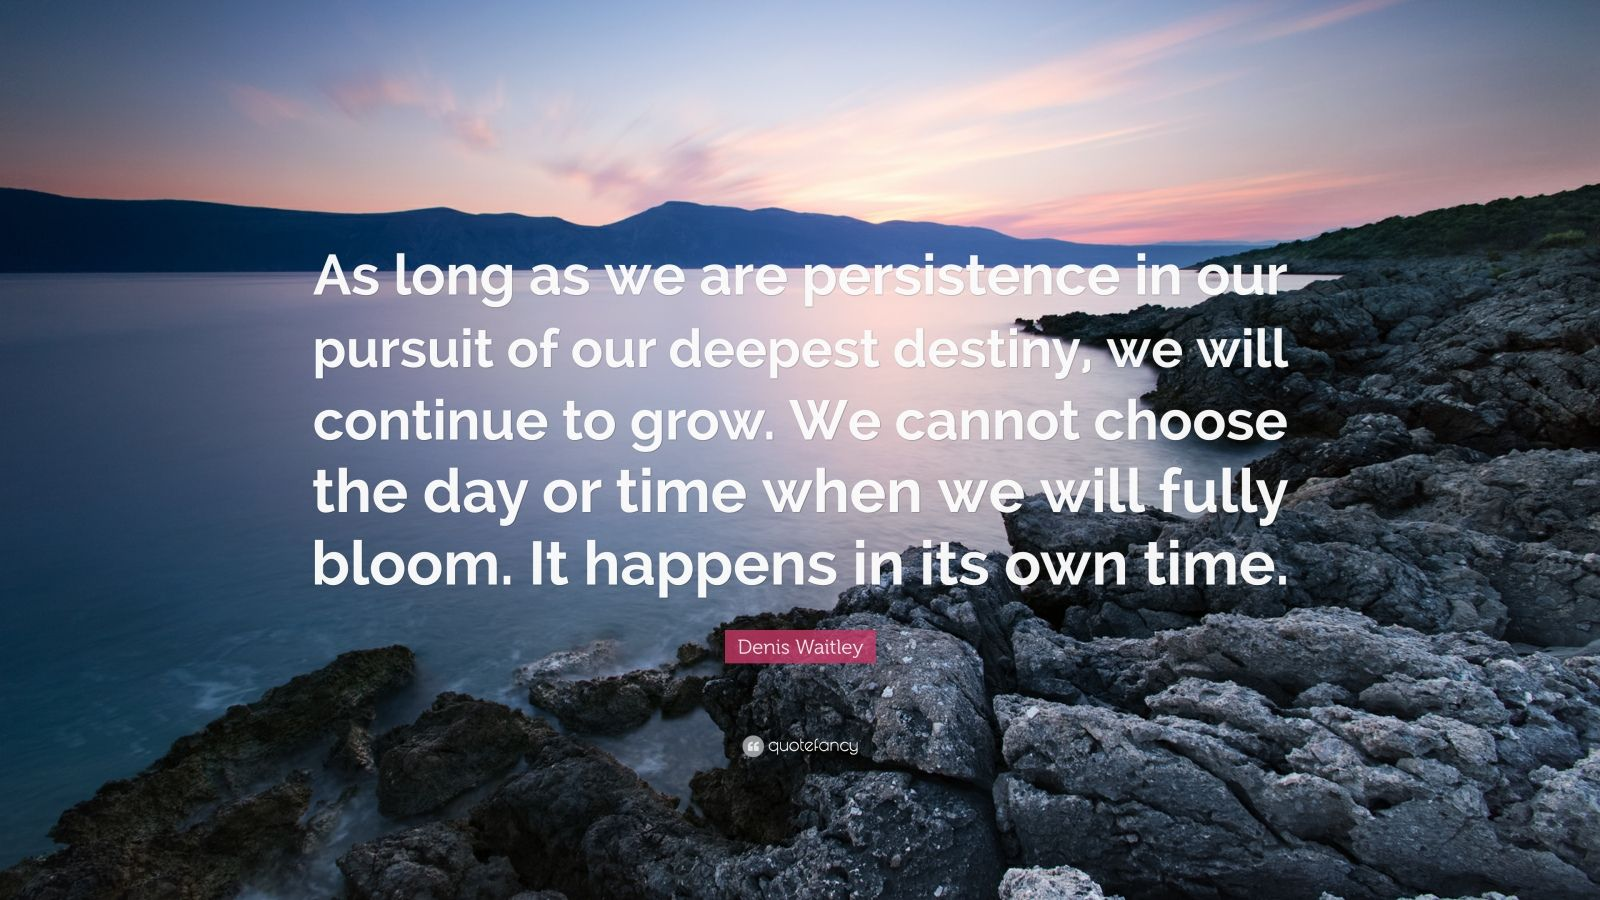 "Denis Waitley Quote: ""As long as we are persistence in our pursuit of our deepest destiny, we will continue to grow. We cannot choose the day or time when we will fully bloom. It happens in its own time."""